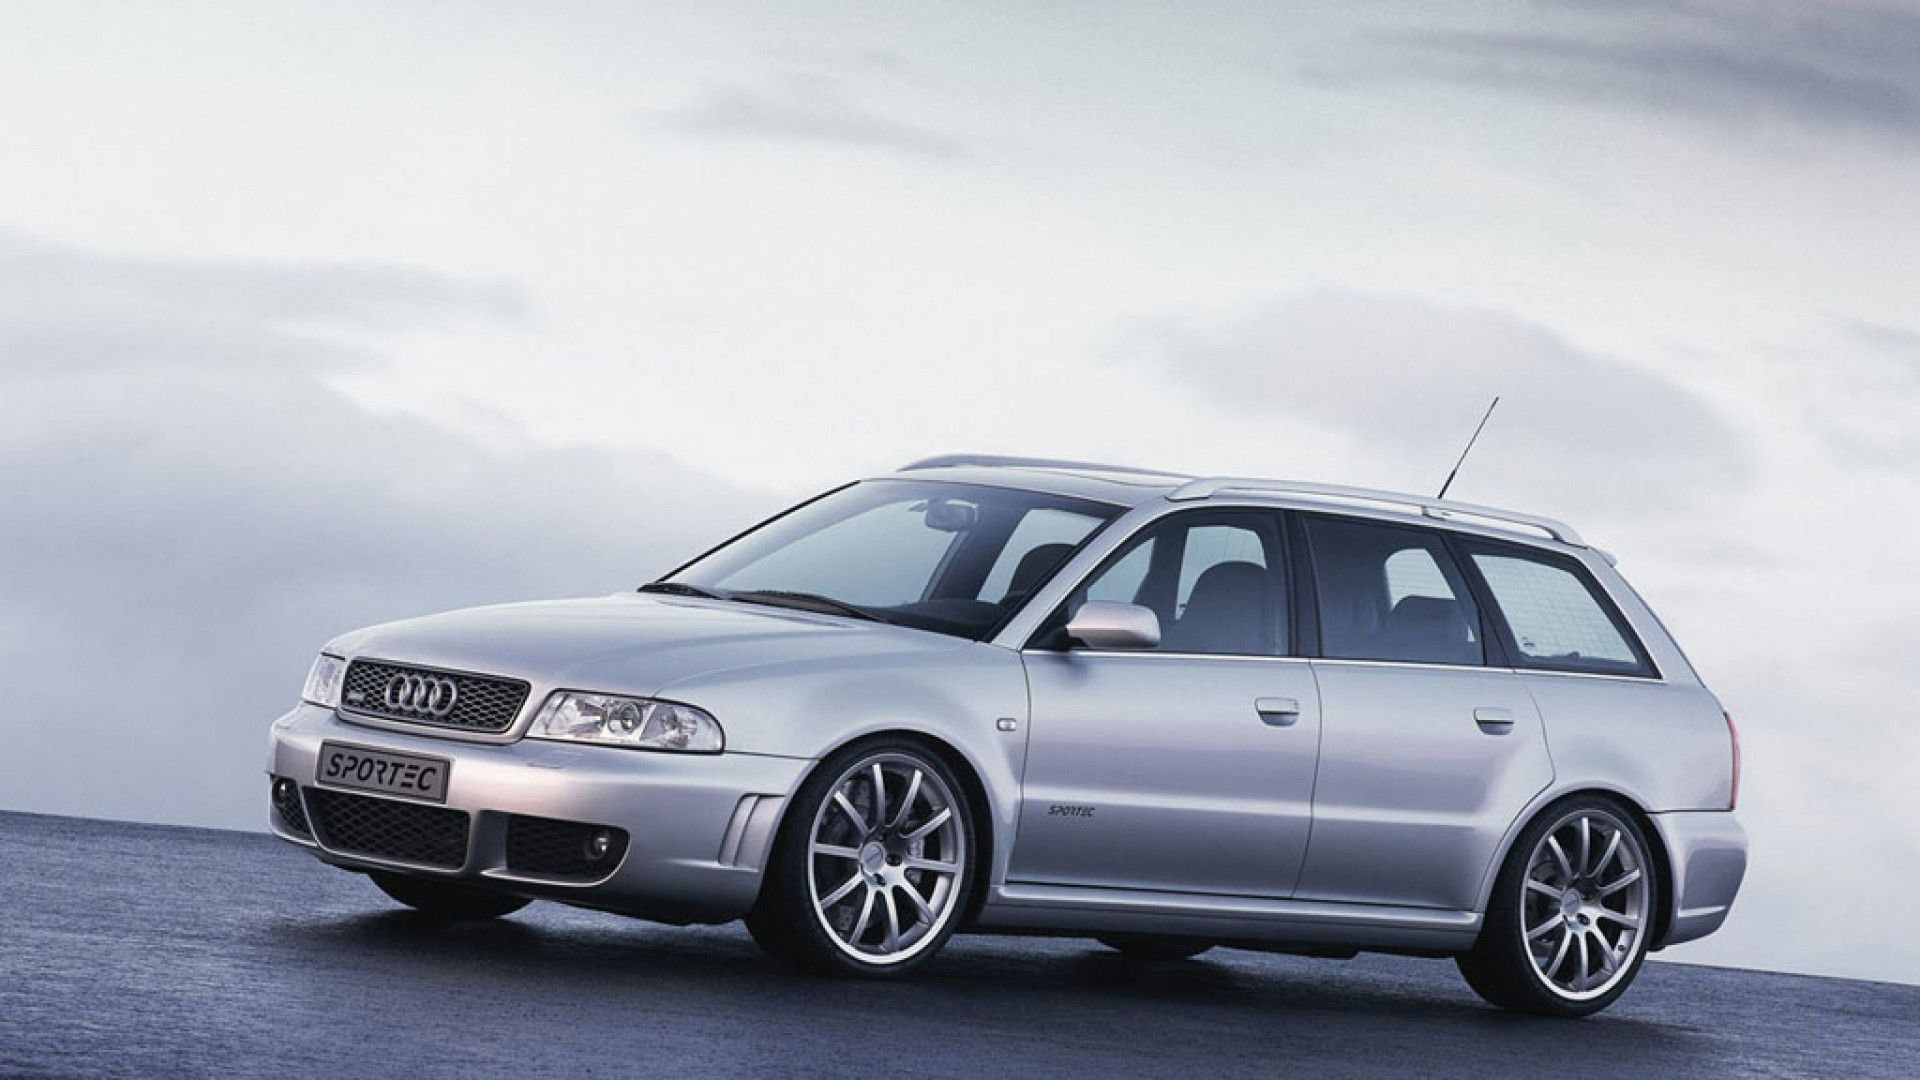 Audi RS 4 Avant (2000 to 2001)